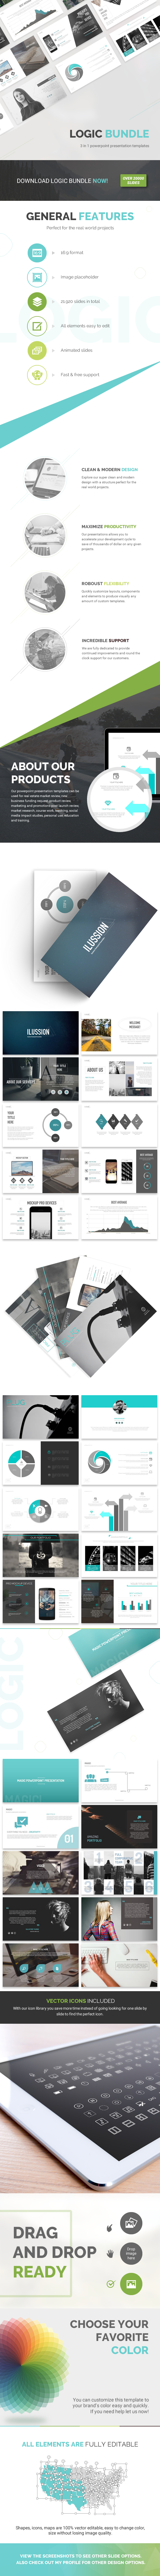 4in1 Powerpoint Bundle (Powerpoint Templates)